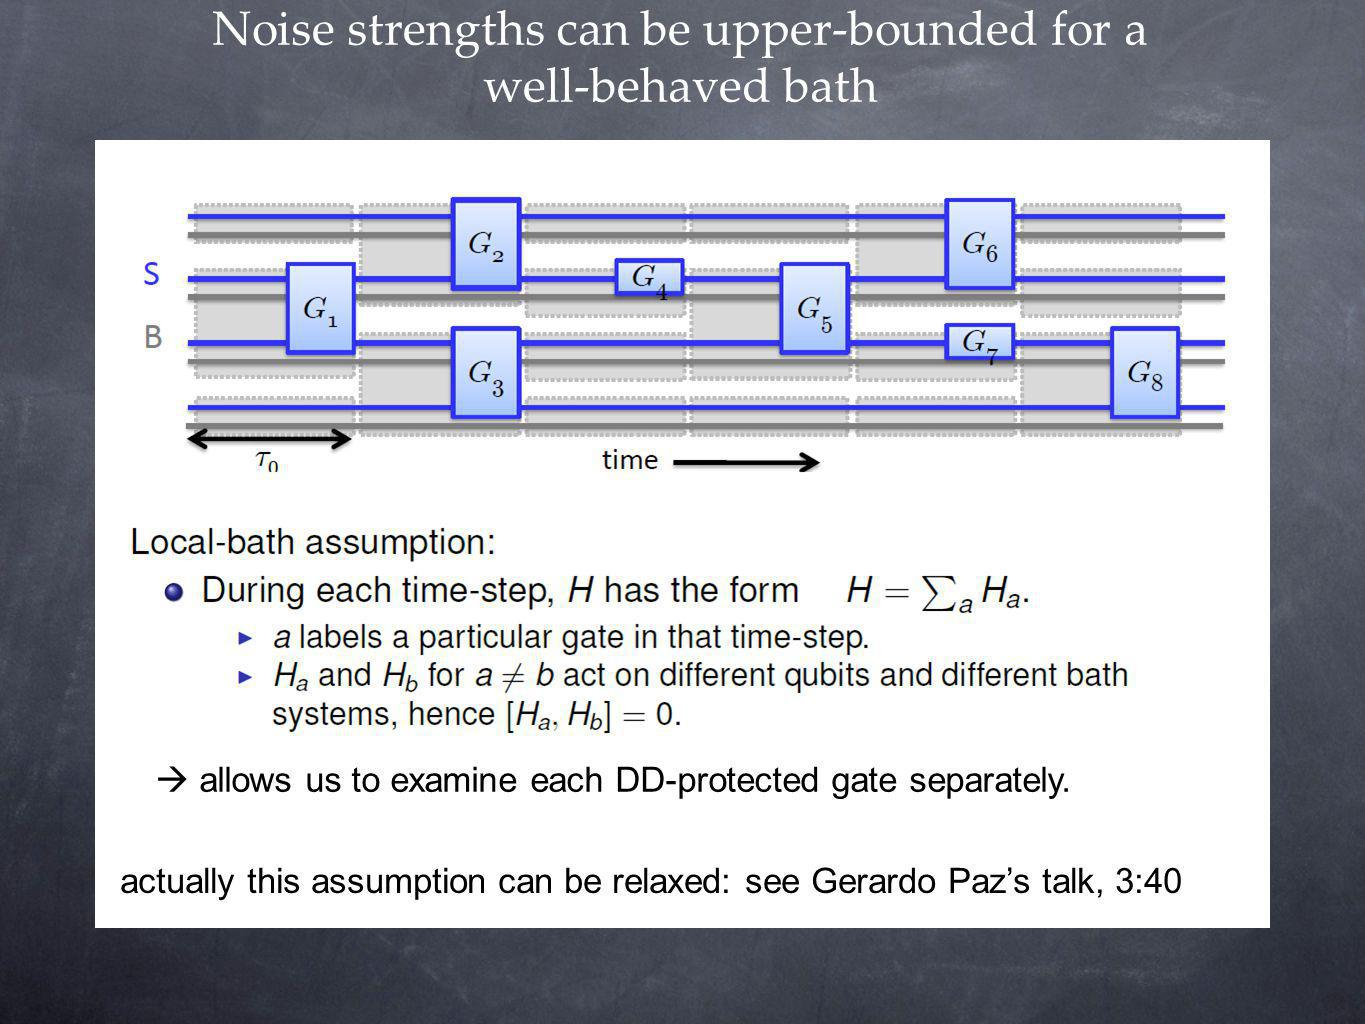 Noise strengths can be upper-bounded for a well-behaved bath actually this assumption can be relaxed: see Gerardo Pazs talk, 3:40 allows us to examine each DD-protected gate separately.